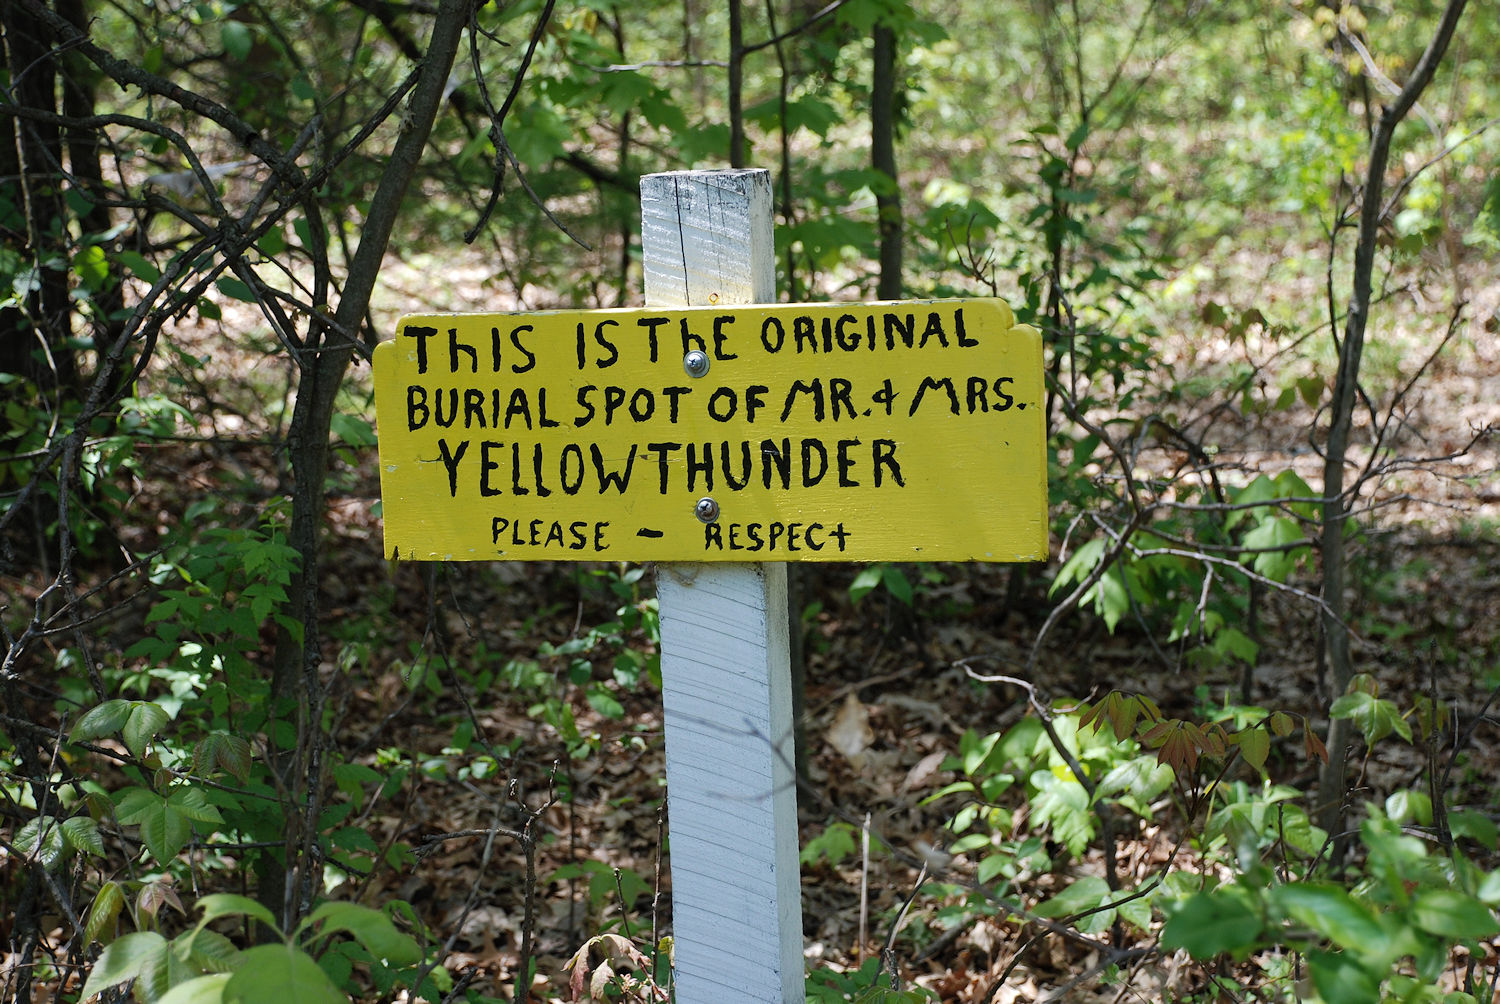 The original burial site of Yellow Thunder and his wife